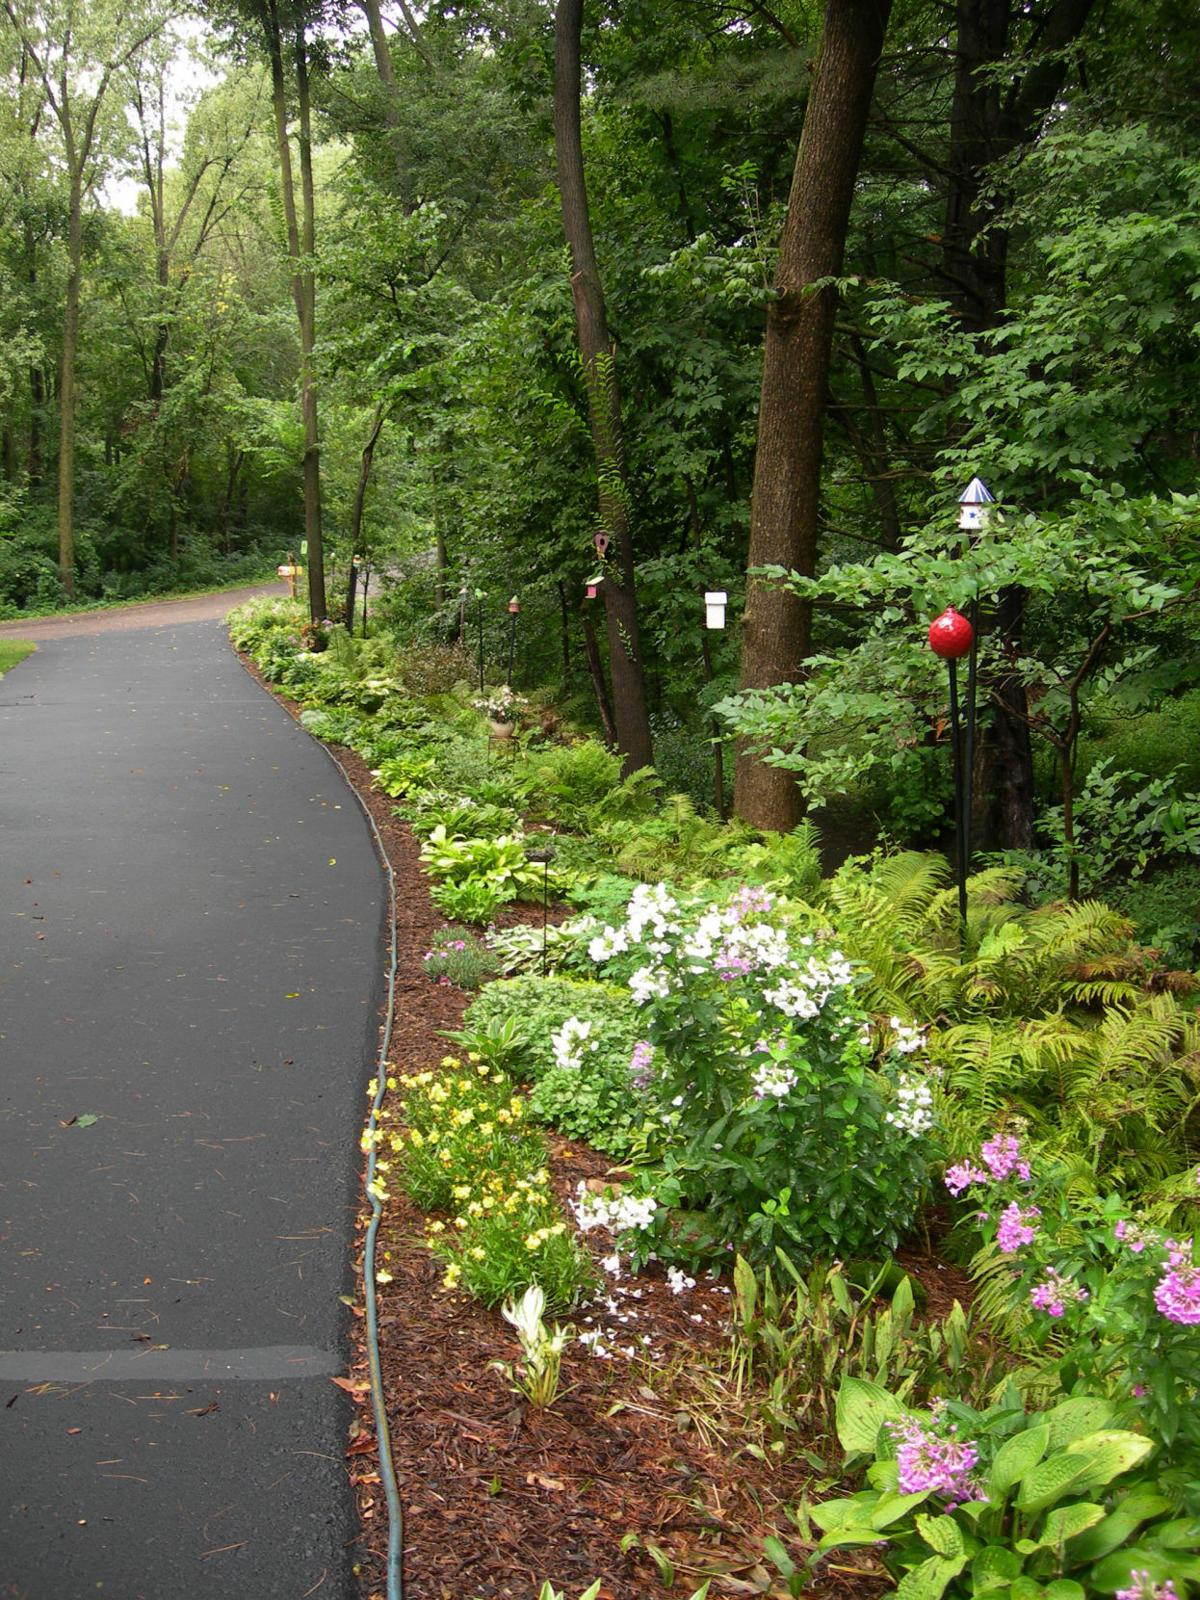 Garden Tour Fifty Shades Of Green: Stepping Stones Garden Tour Celebrates 16 Years Of Outdoor